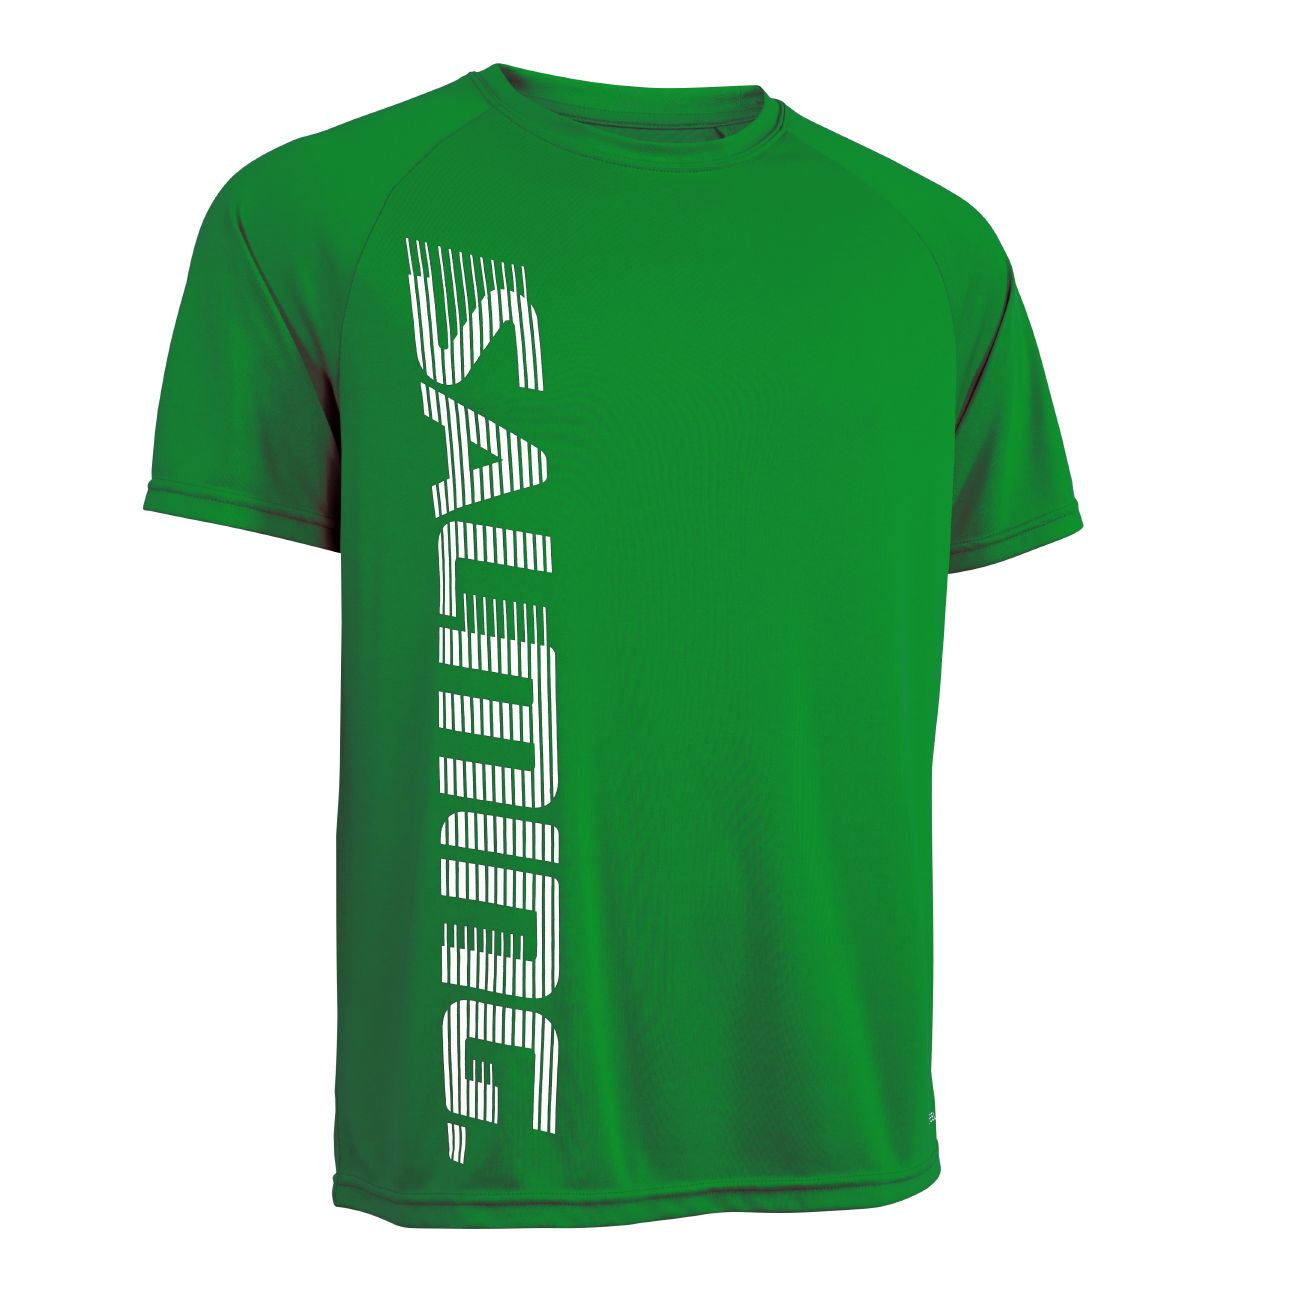 Salming Training Tee 2.0 Zelená, 140